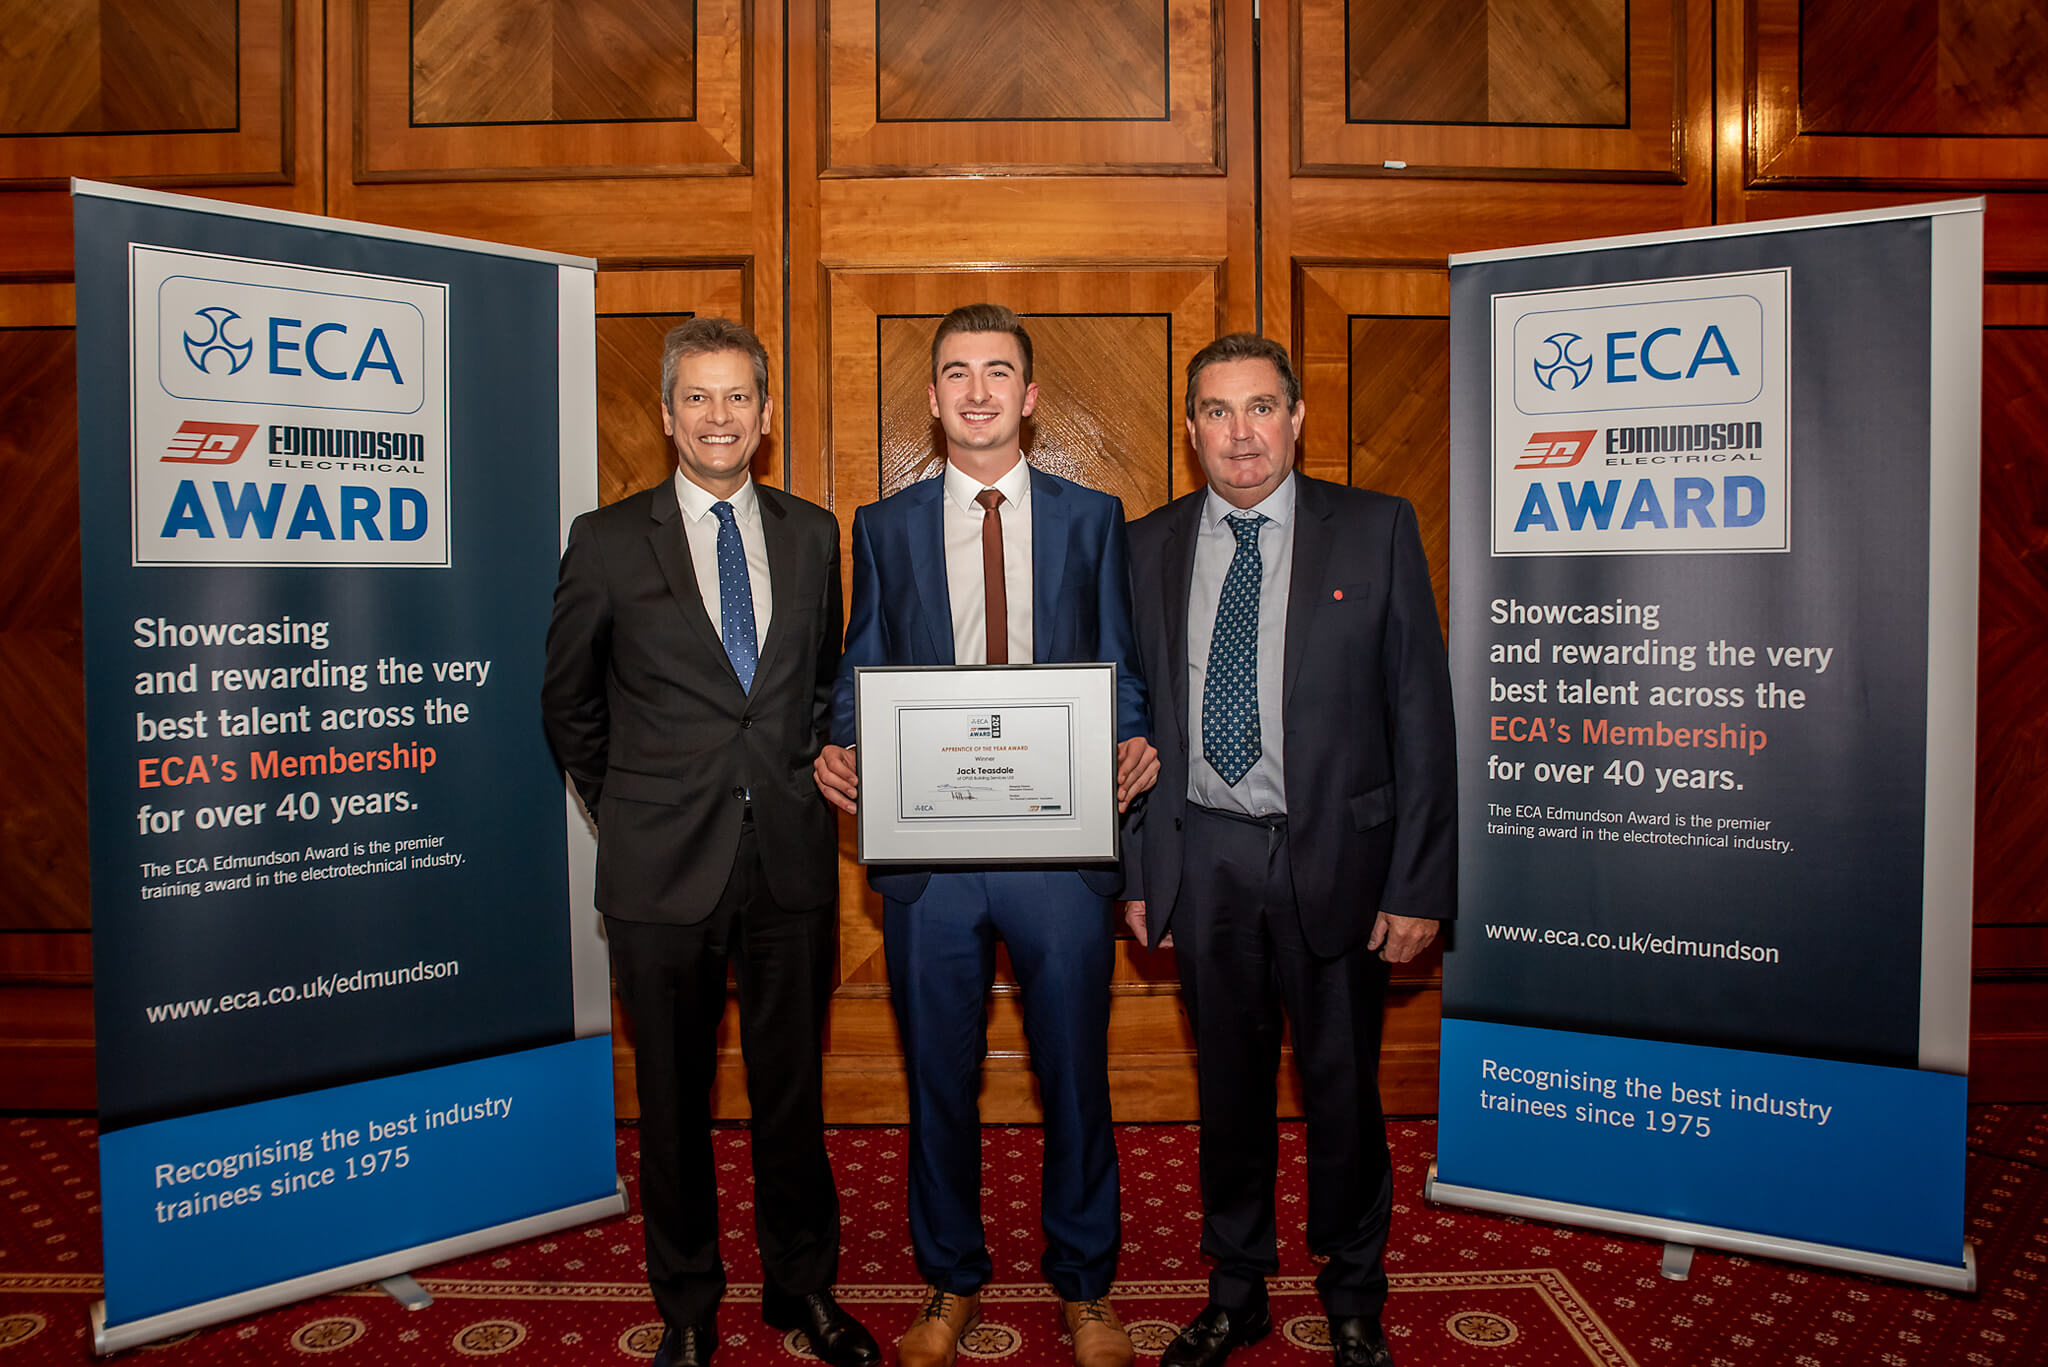 2018 Apprentice of the Year Jack Teasdale on his year so far